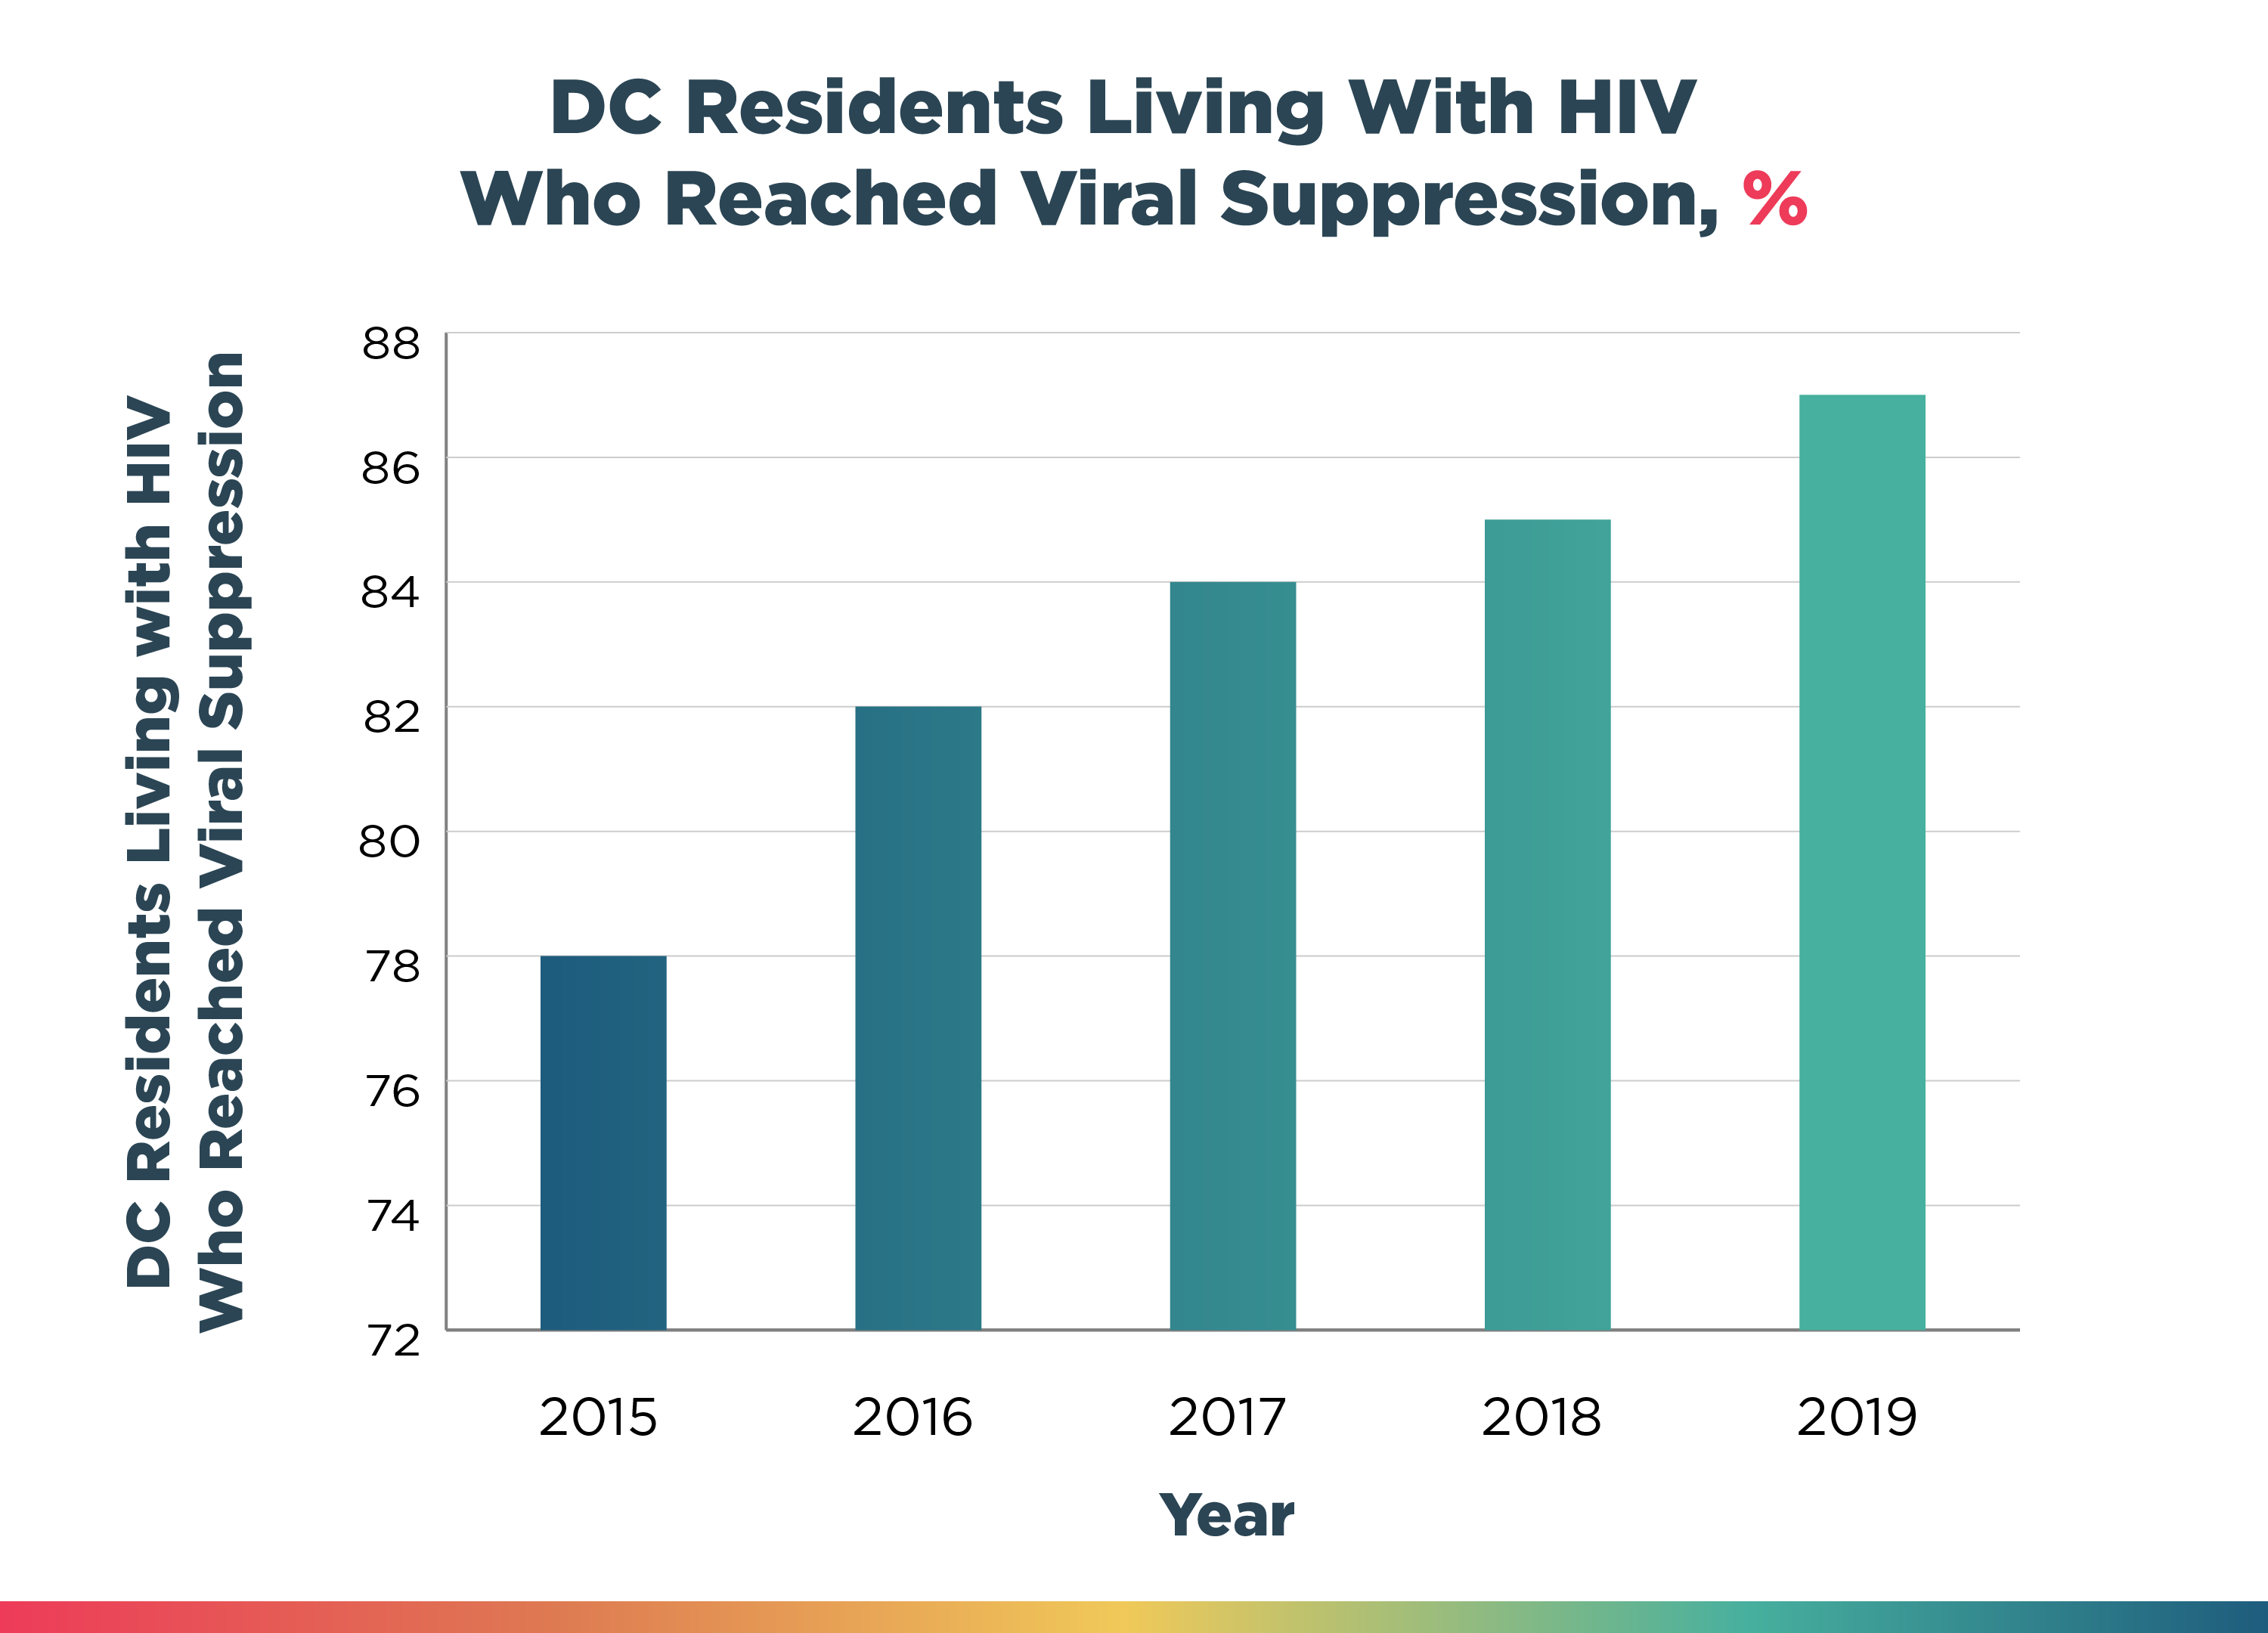 DC Residents Living With HIV Who Reached Viral Suppression